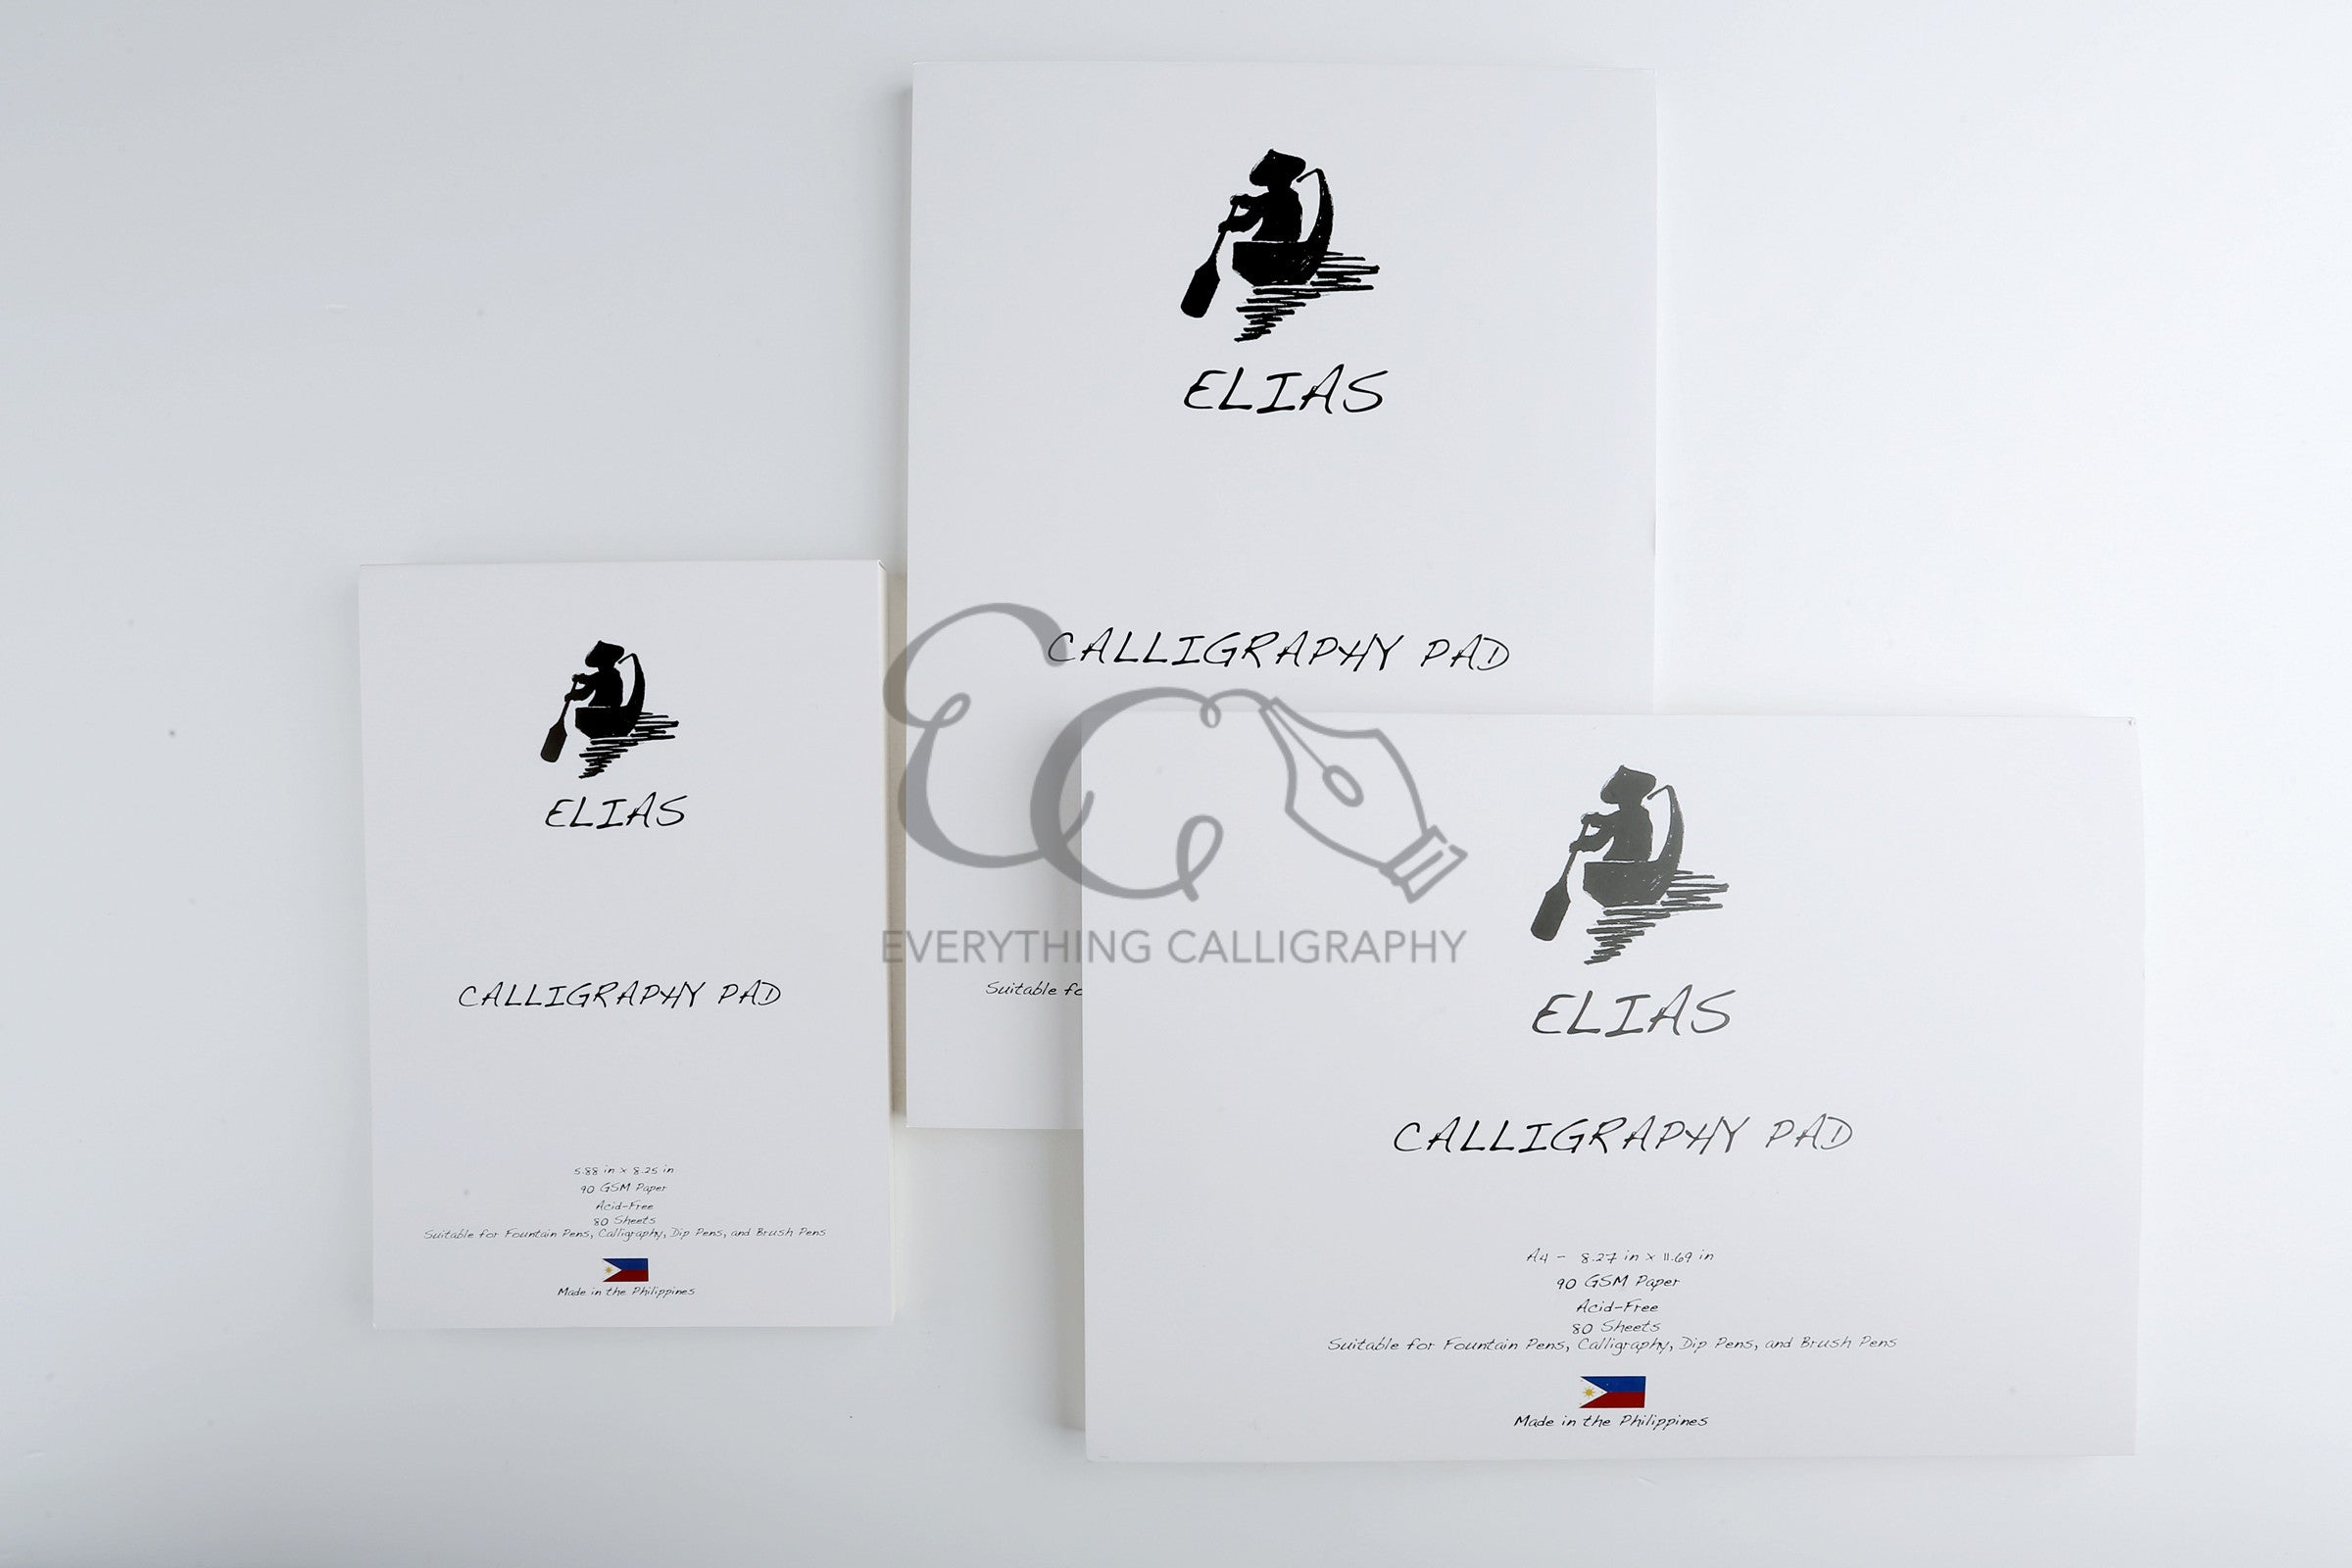 Elias Calligraphy Pads